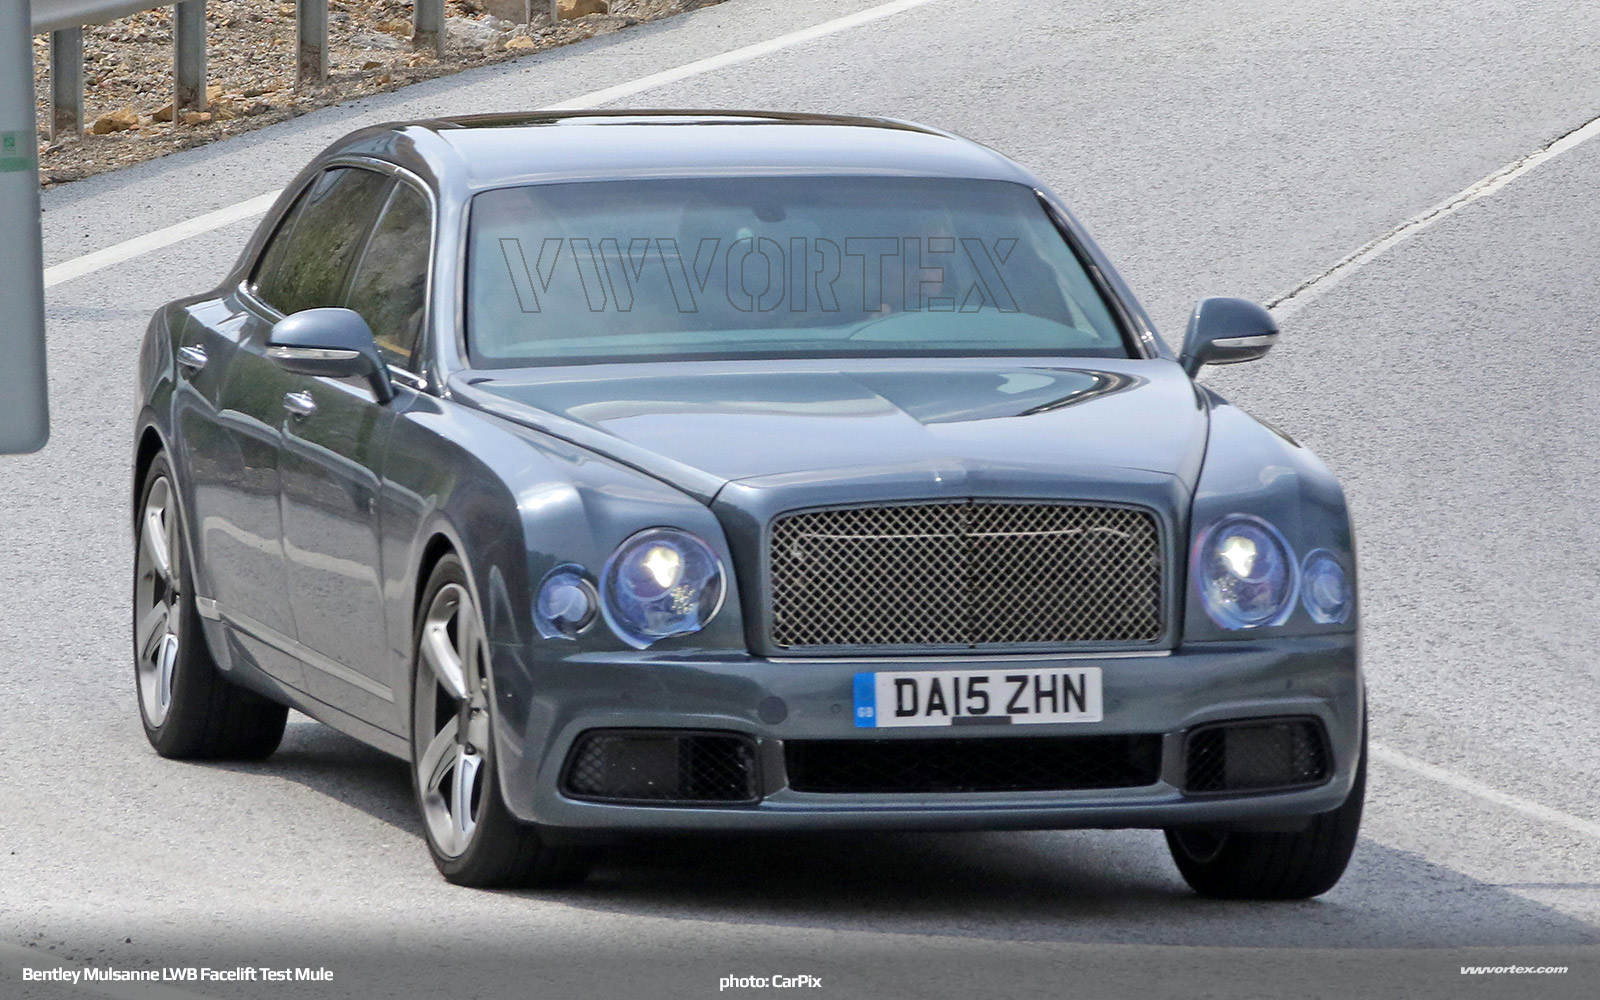 Bentley-Mulsanne-LWB-test-mule-facelift-513